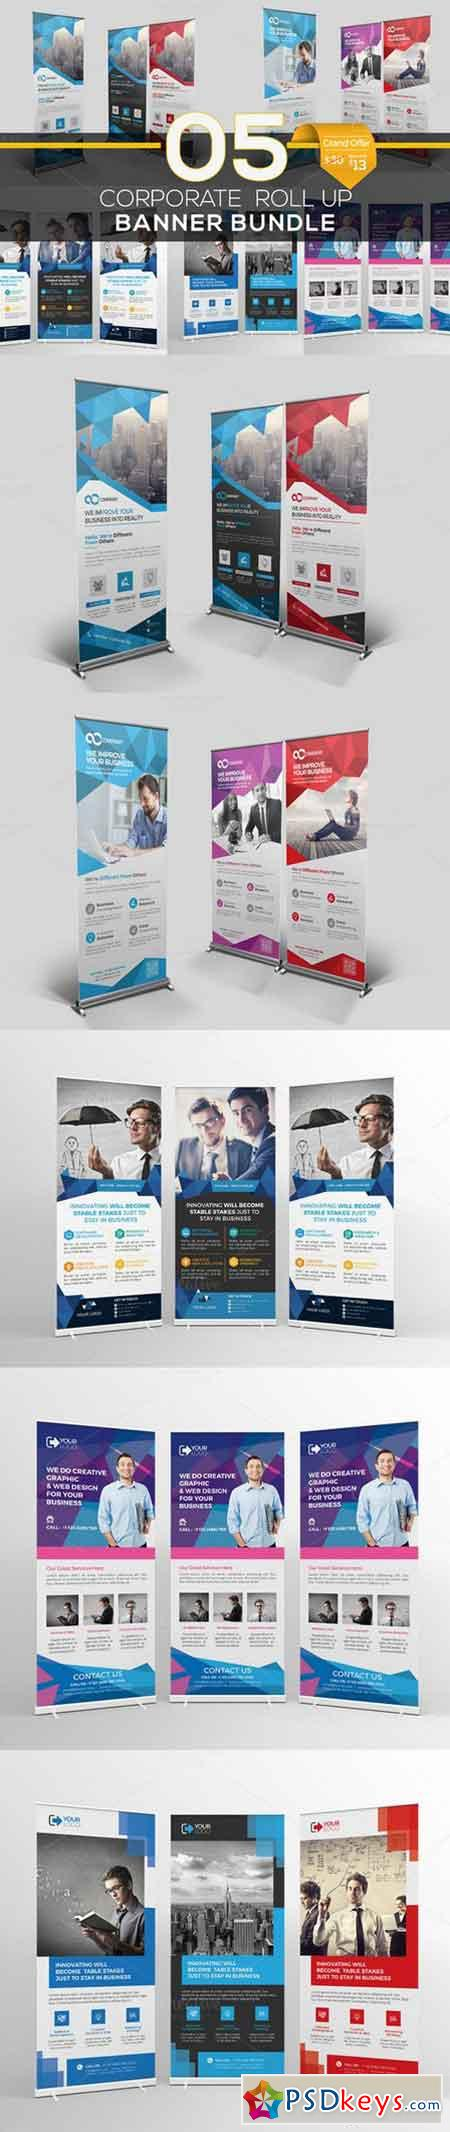 Roll Up Banner Bundle 5 in 1 733963